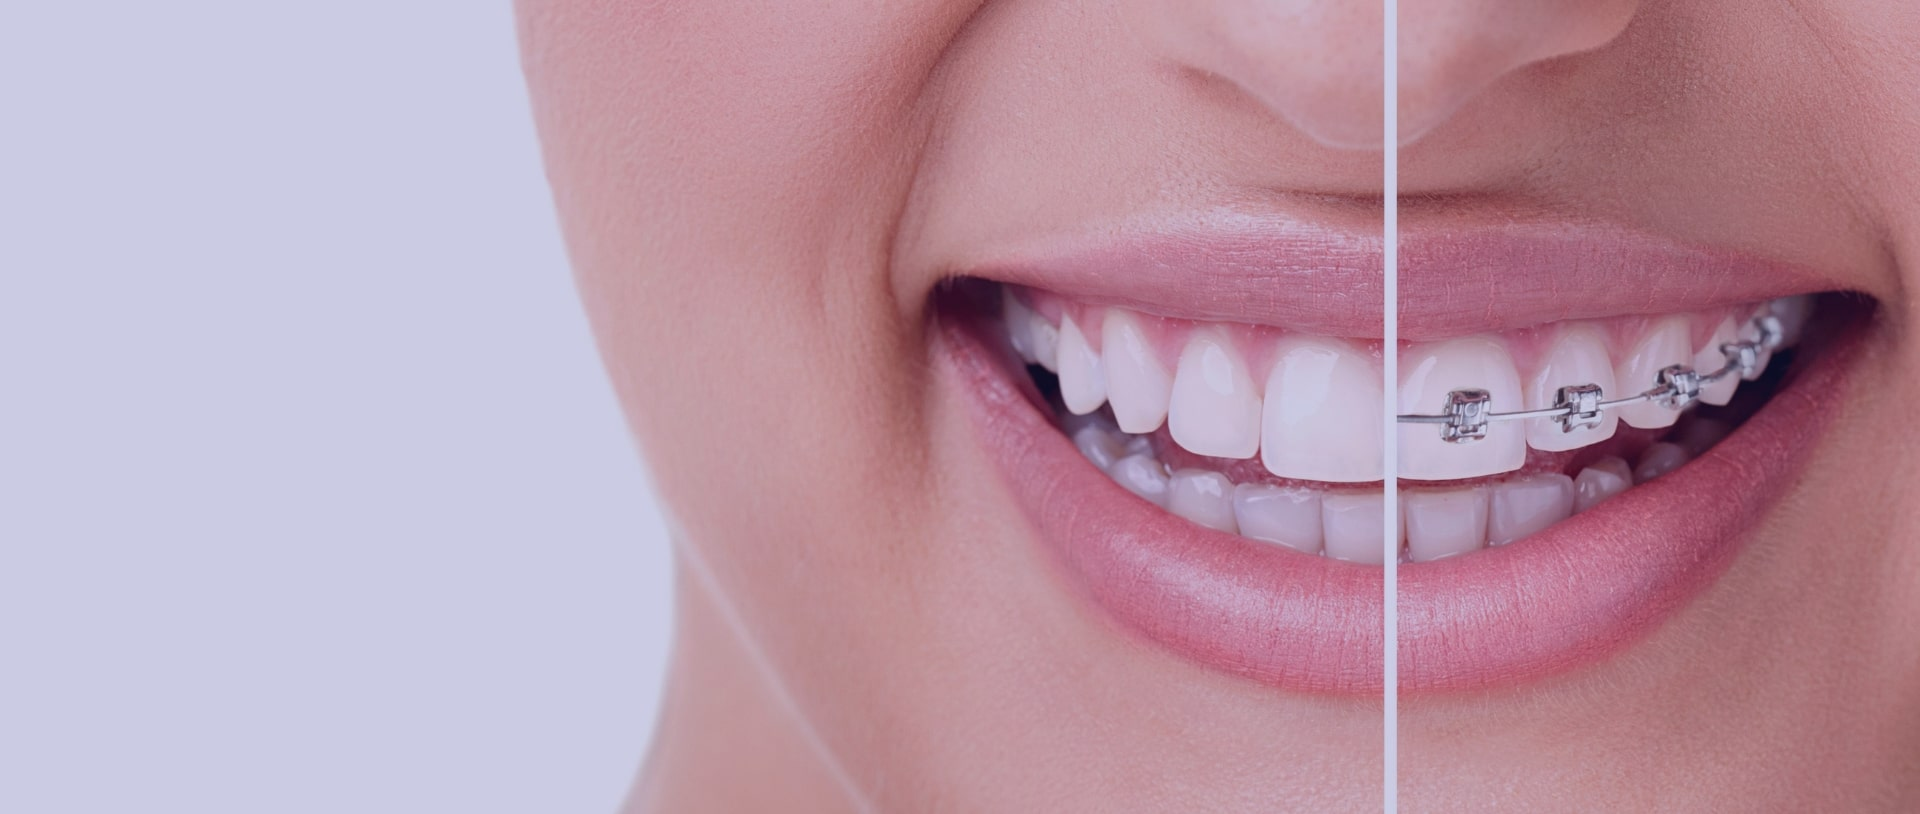 Dental Implants In Chennai Best Cosmetic Dentist In